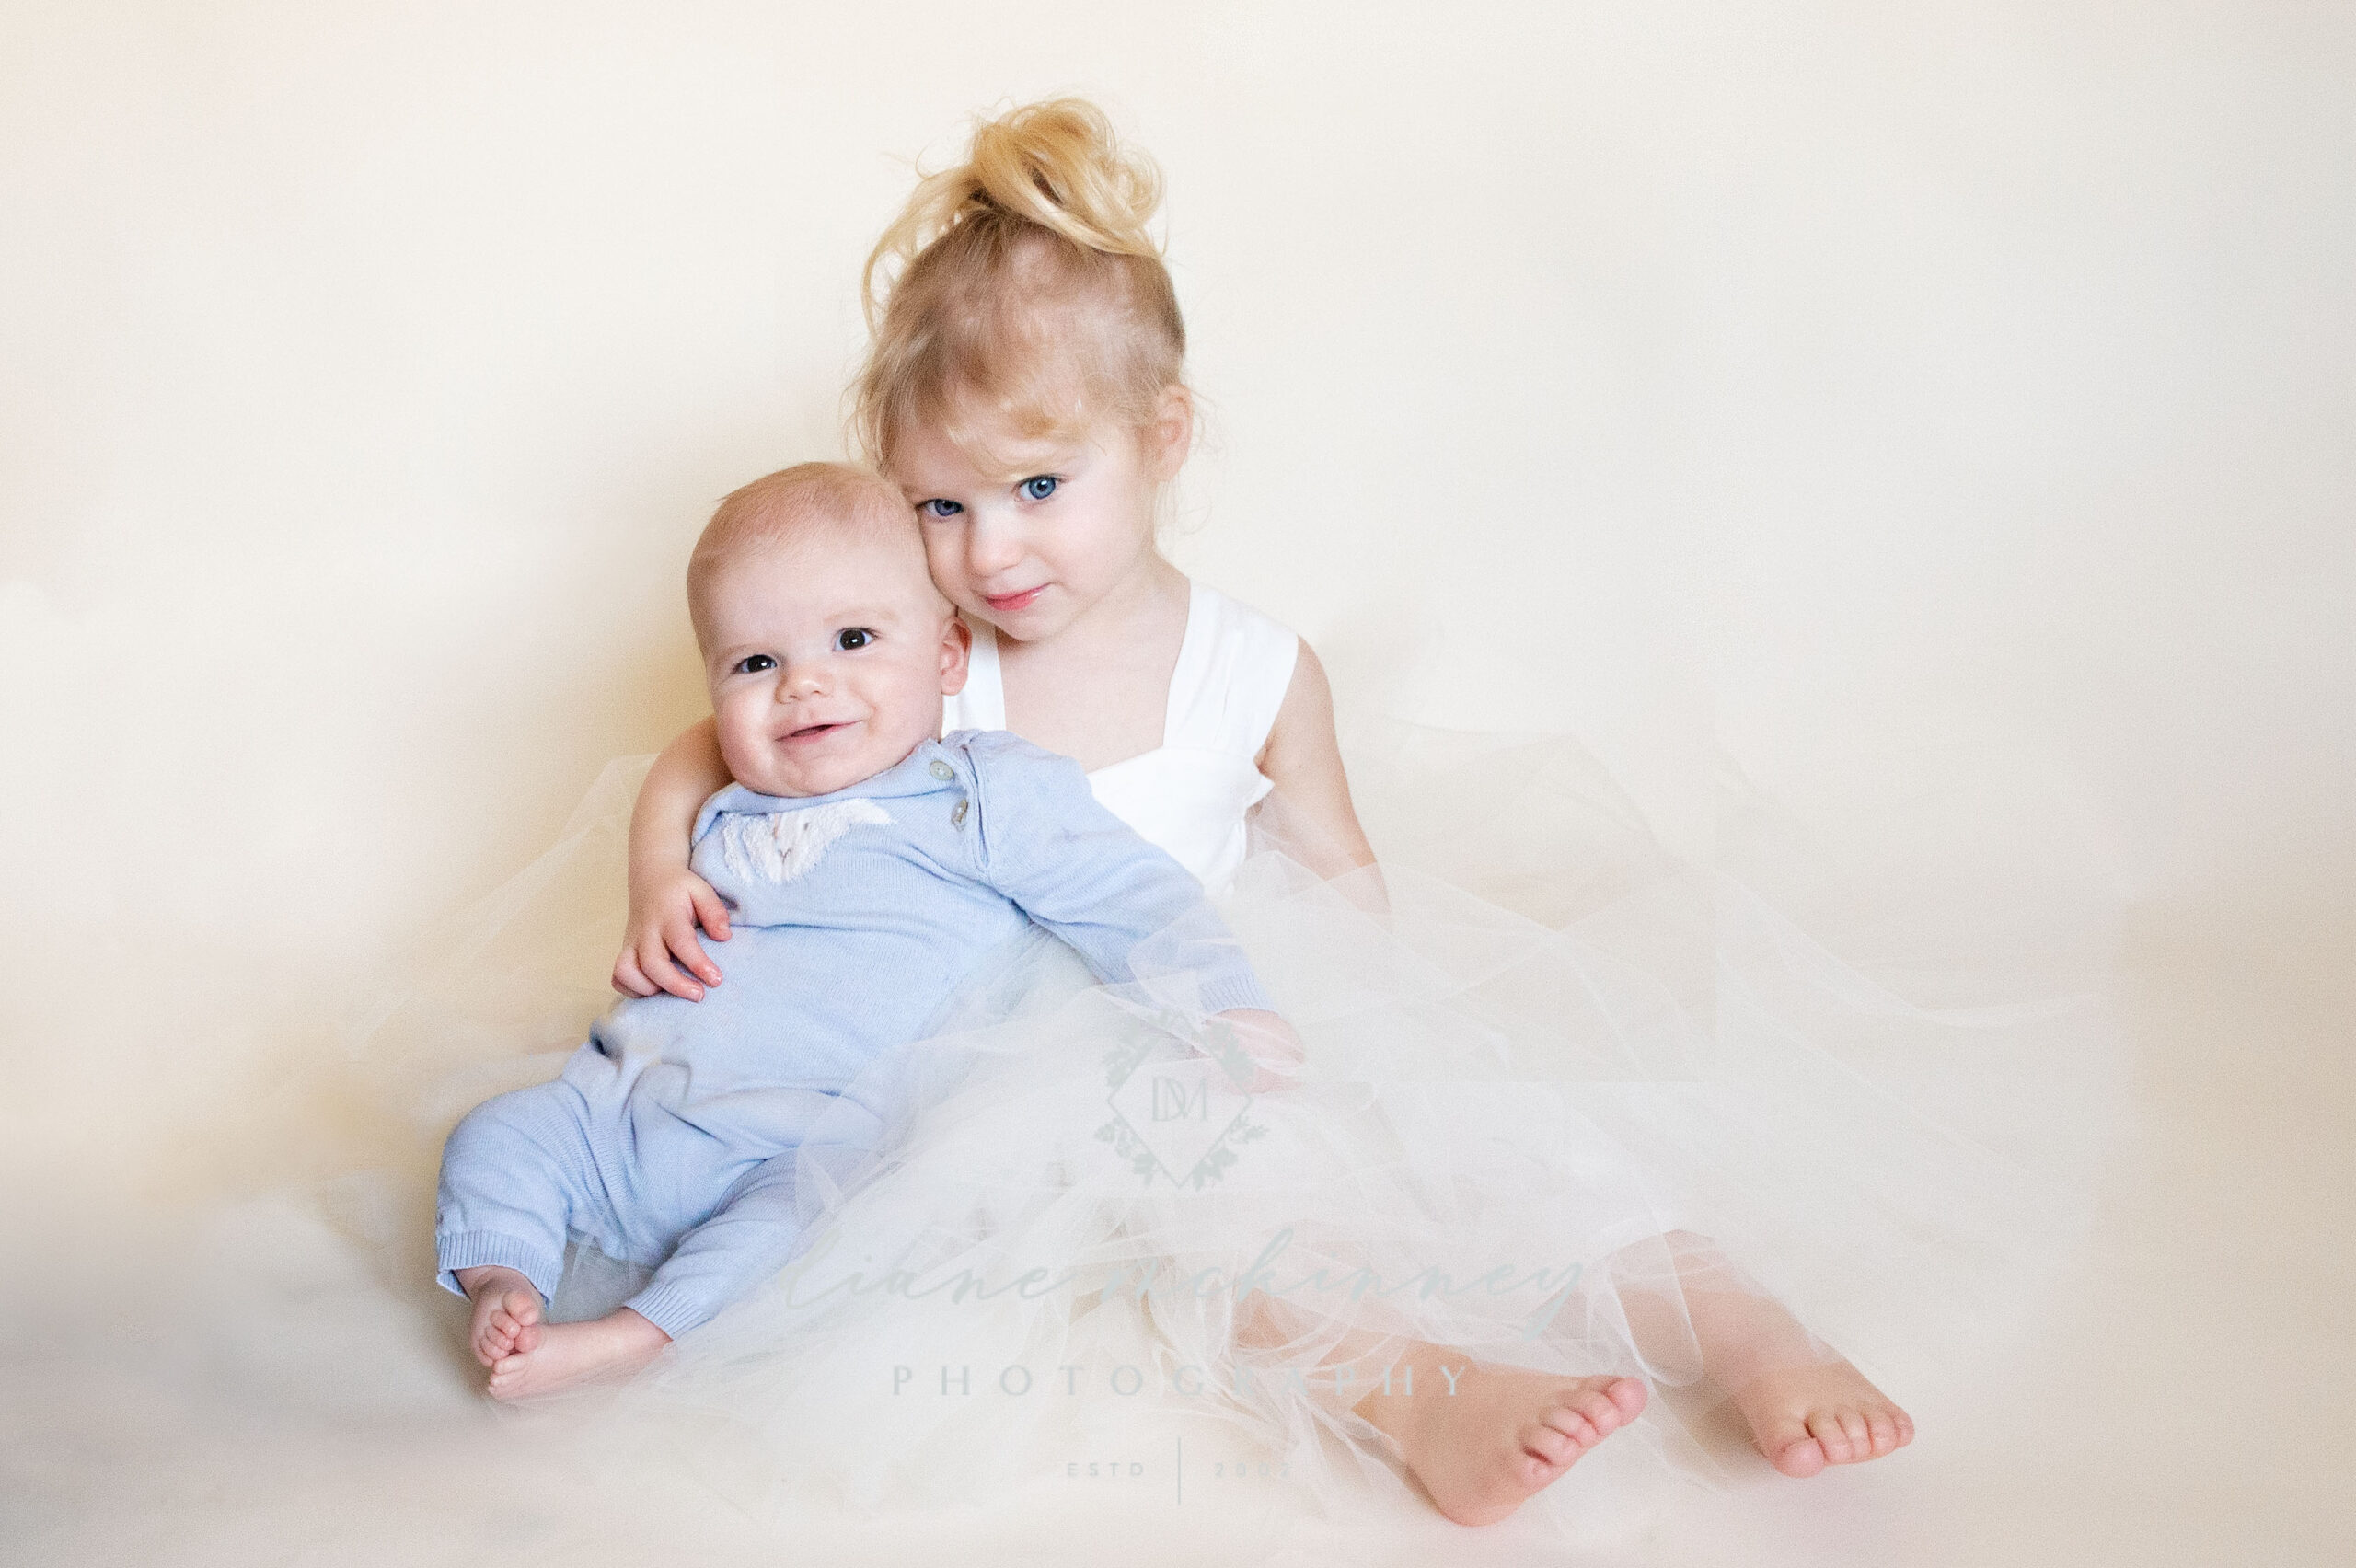 Sister and baby photos